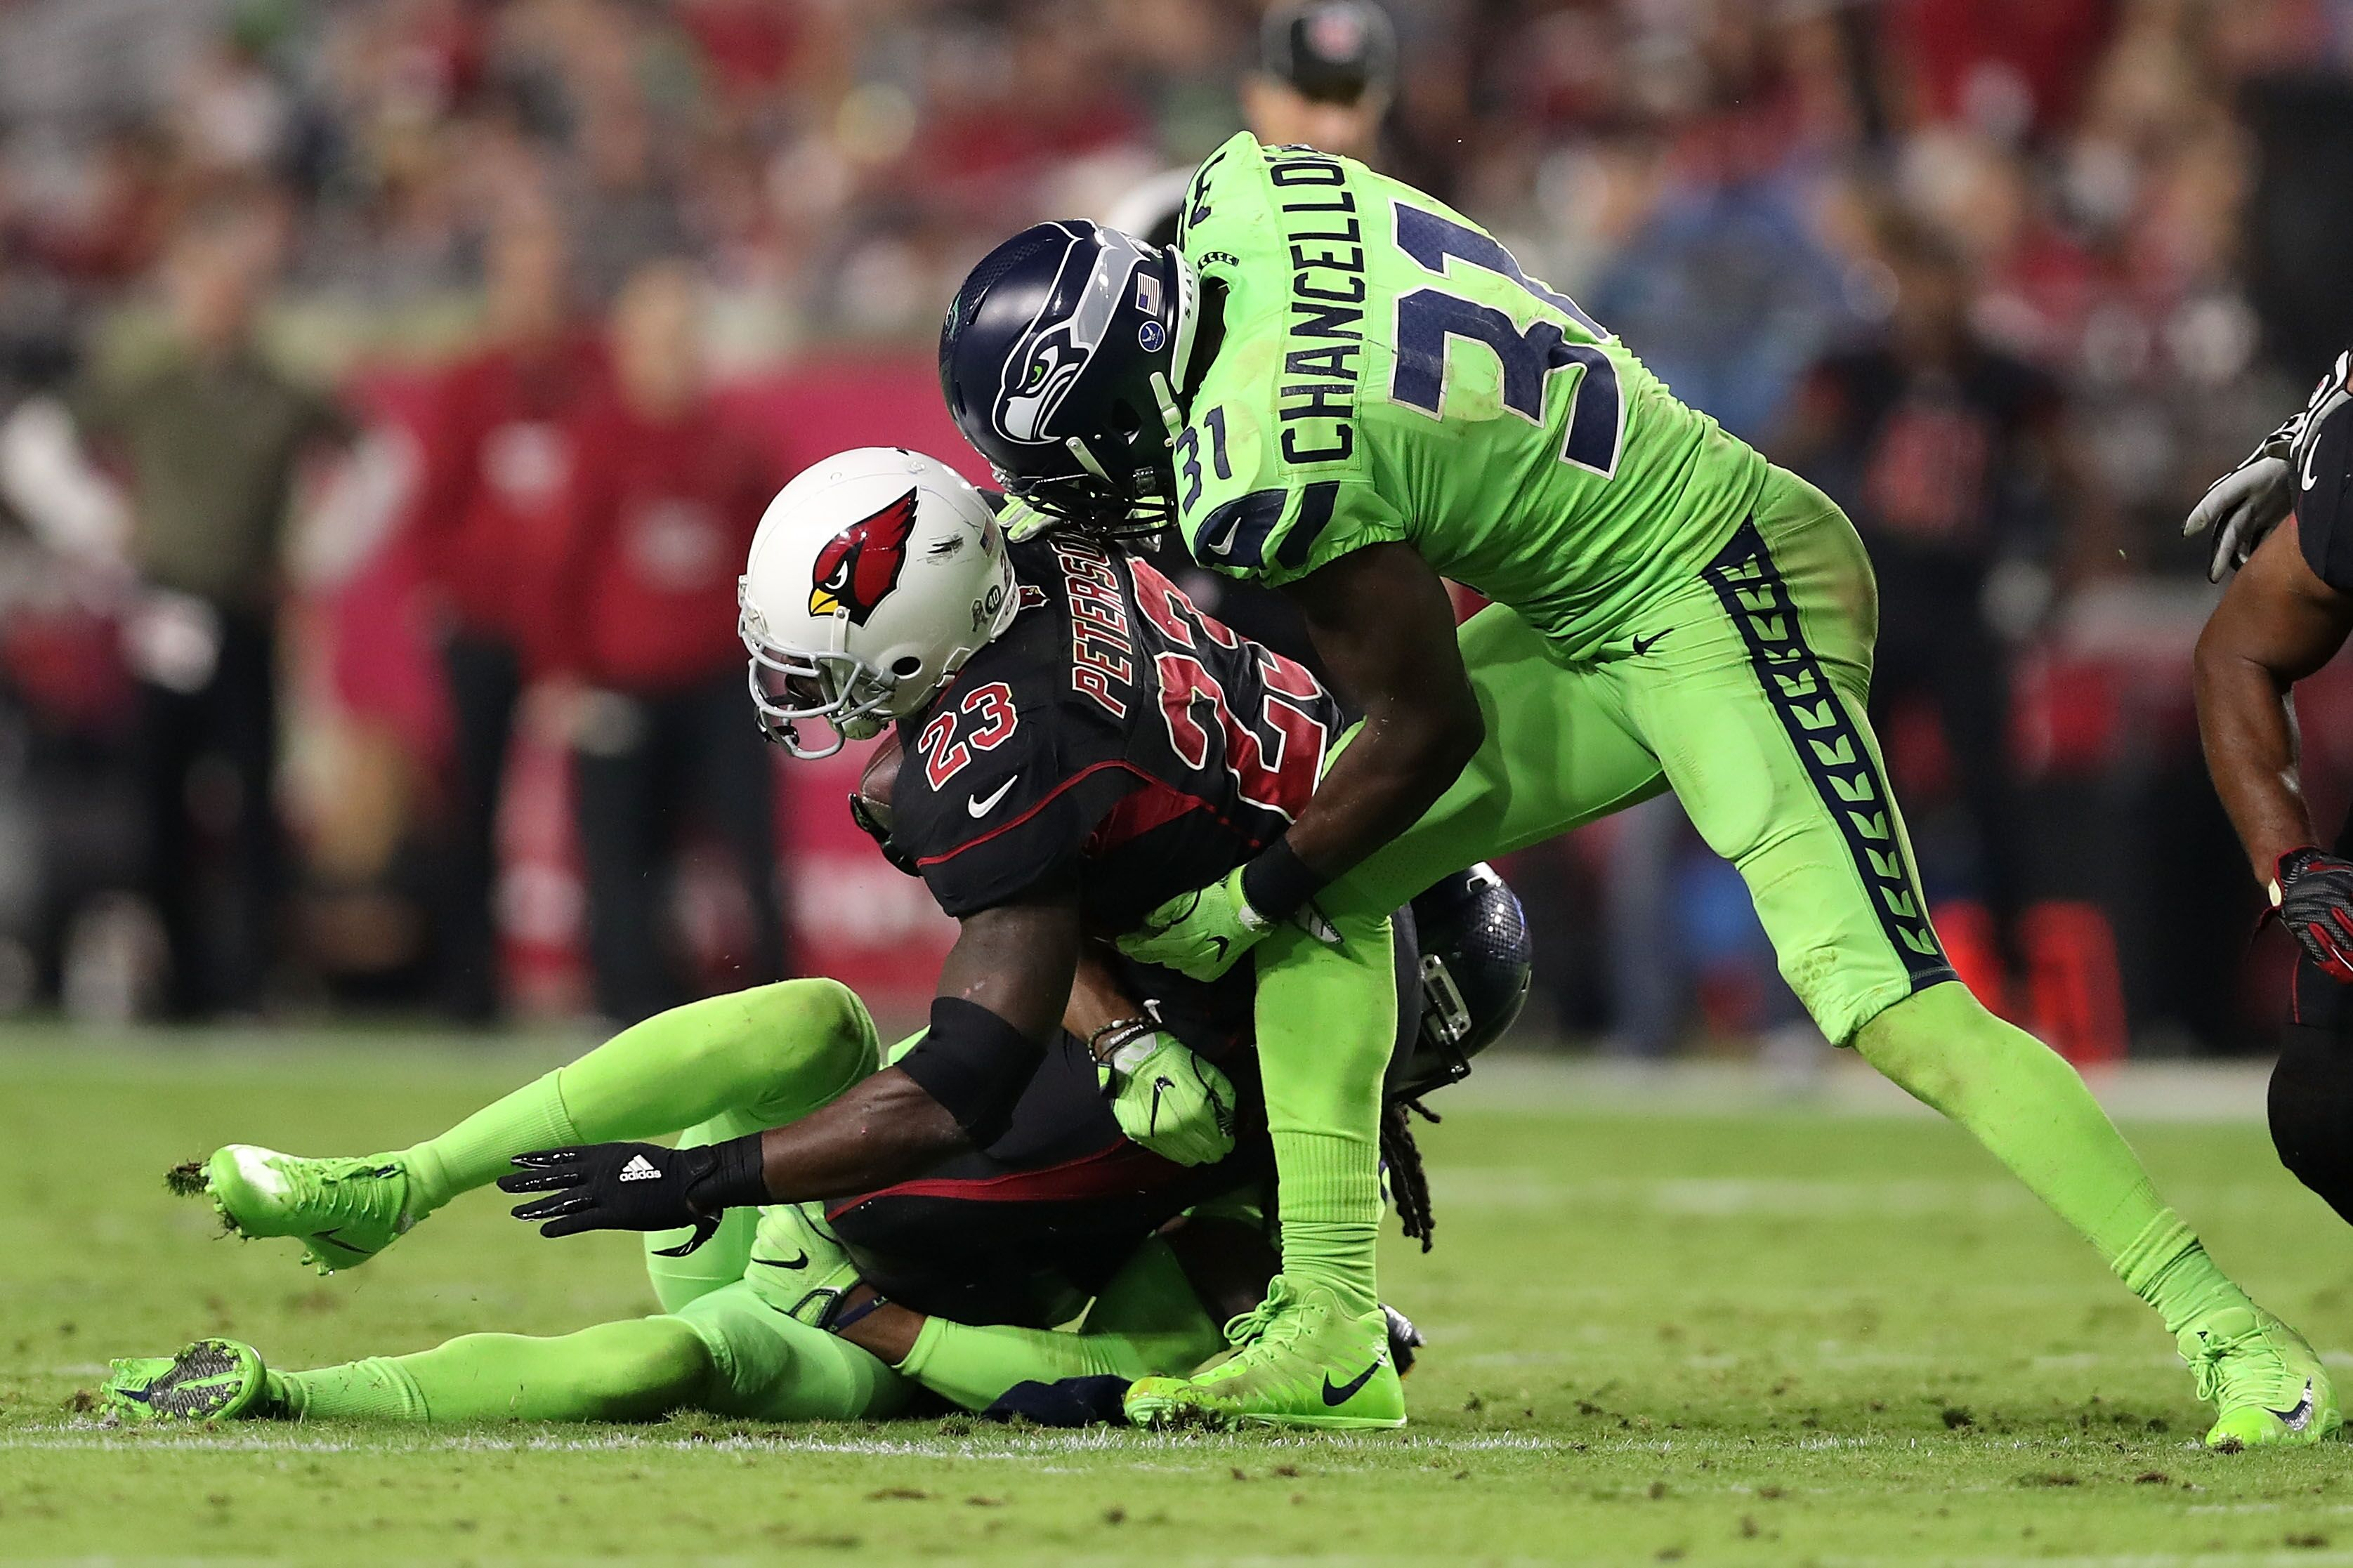 872322206-seattle-seahawks-v-arizona-cardinals.jpg